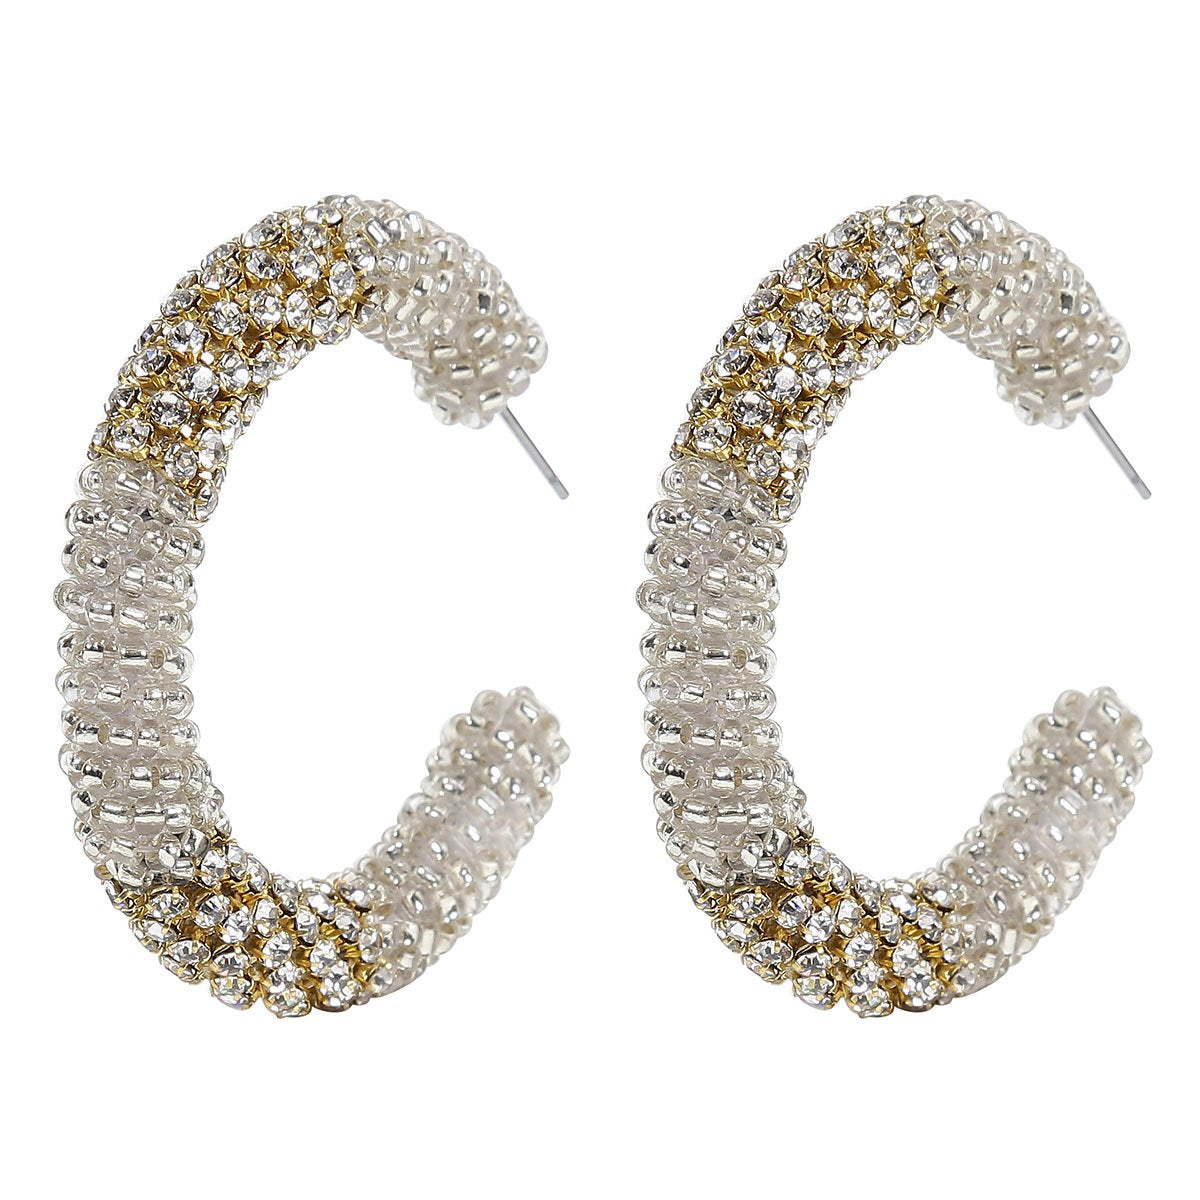 Deepa Gurnani Handmade Beaded Hoop Earrings